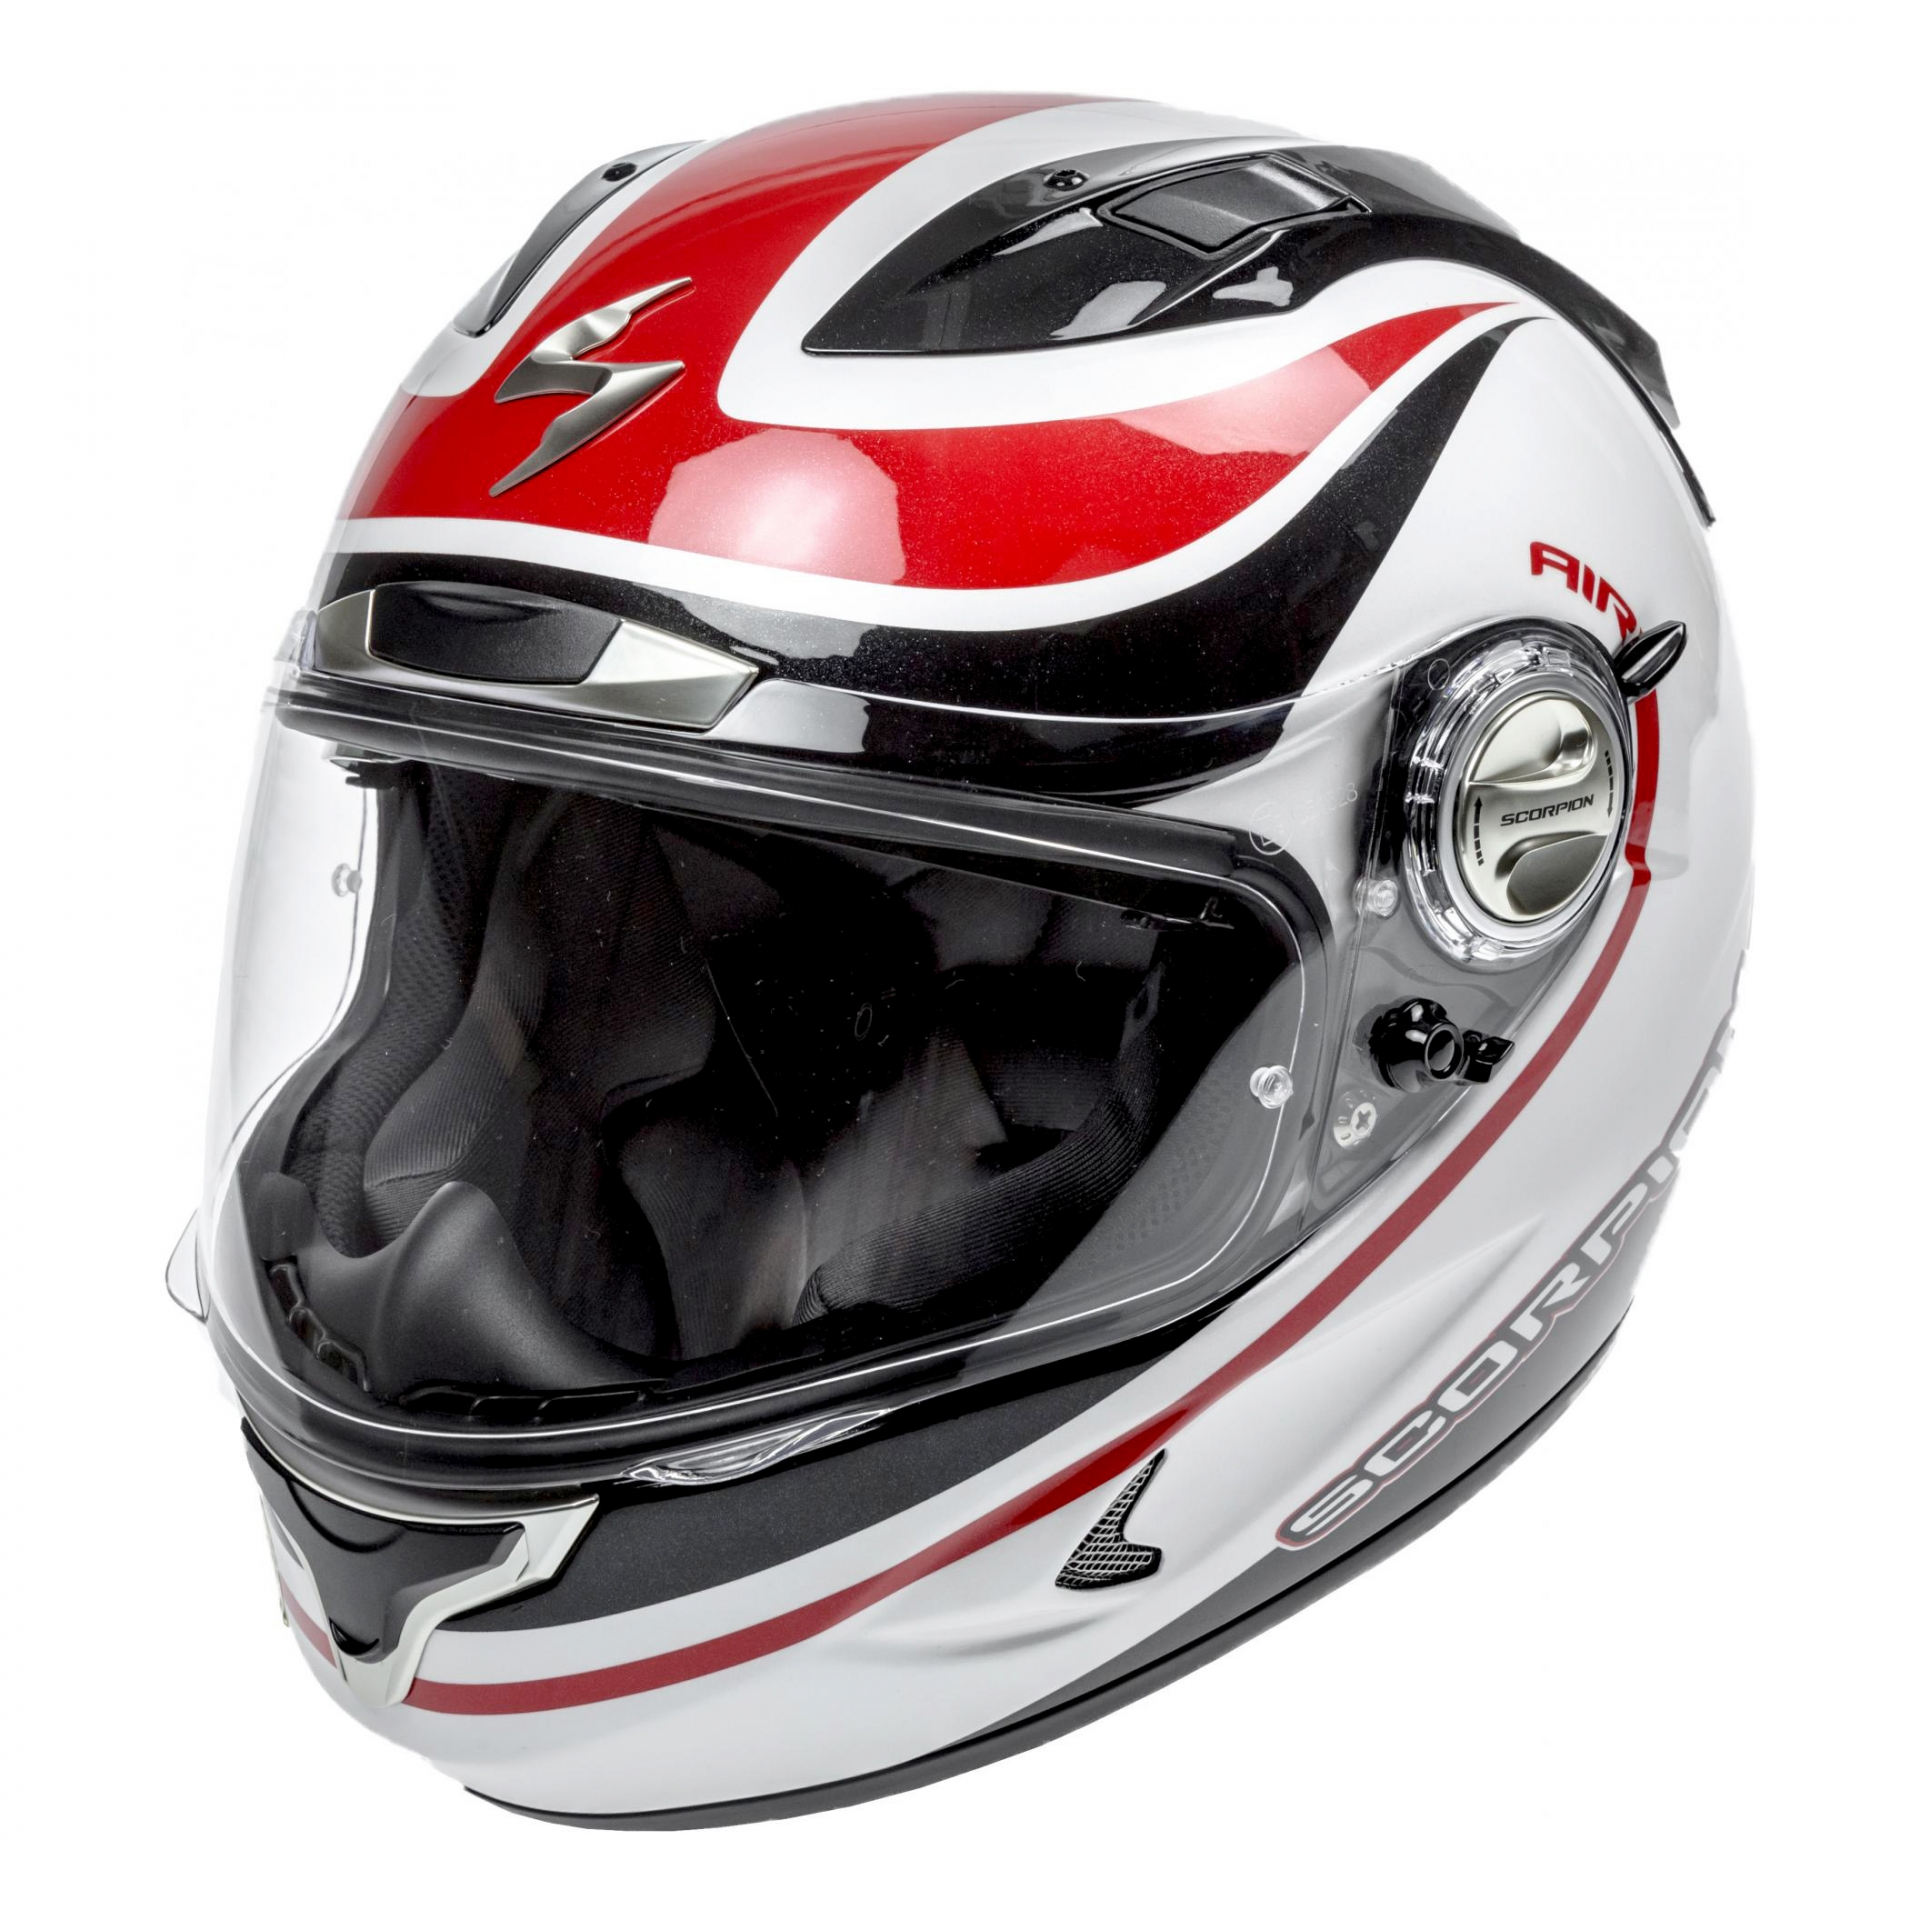 Casque intégral Scorpion EXO-1000 AIR Patriot Noir Blanc Rouge - XL